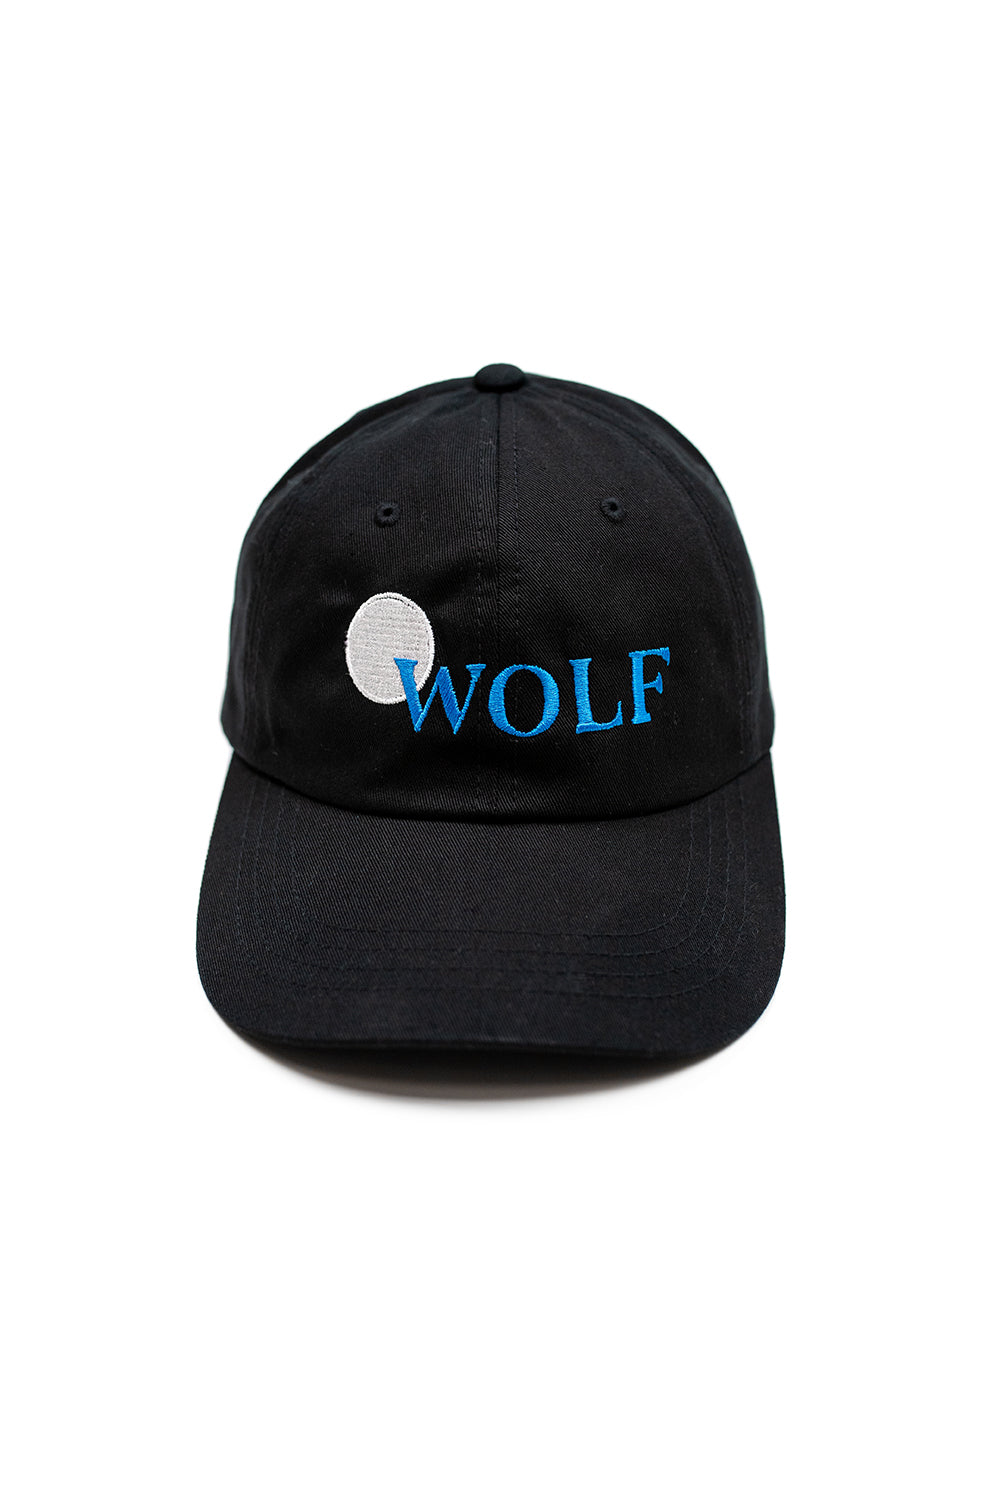 Production Cap